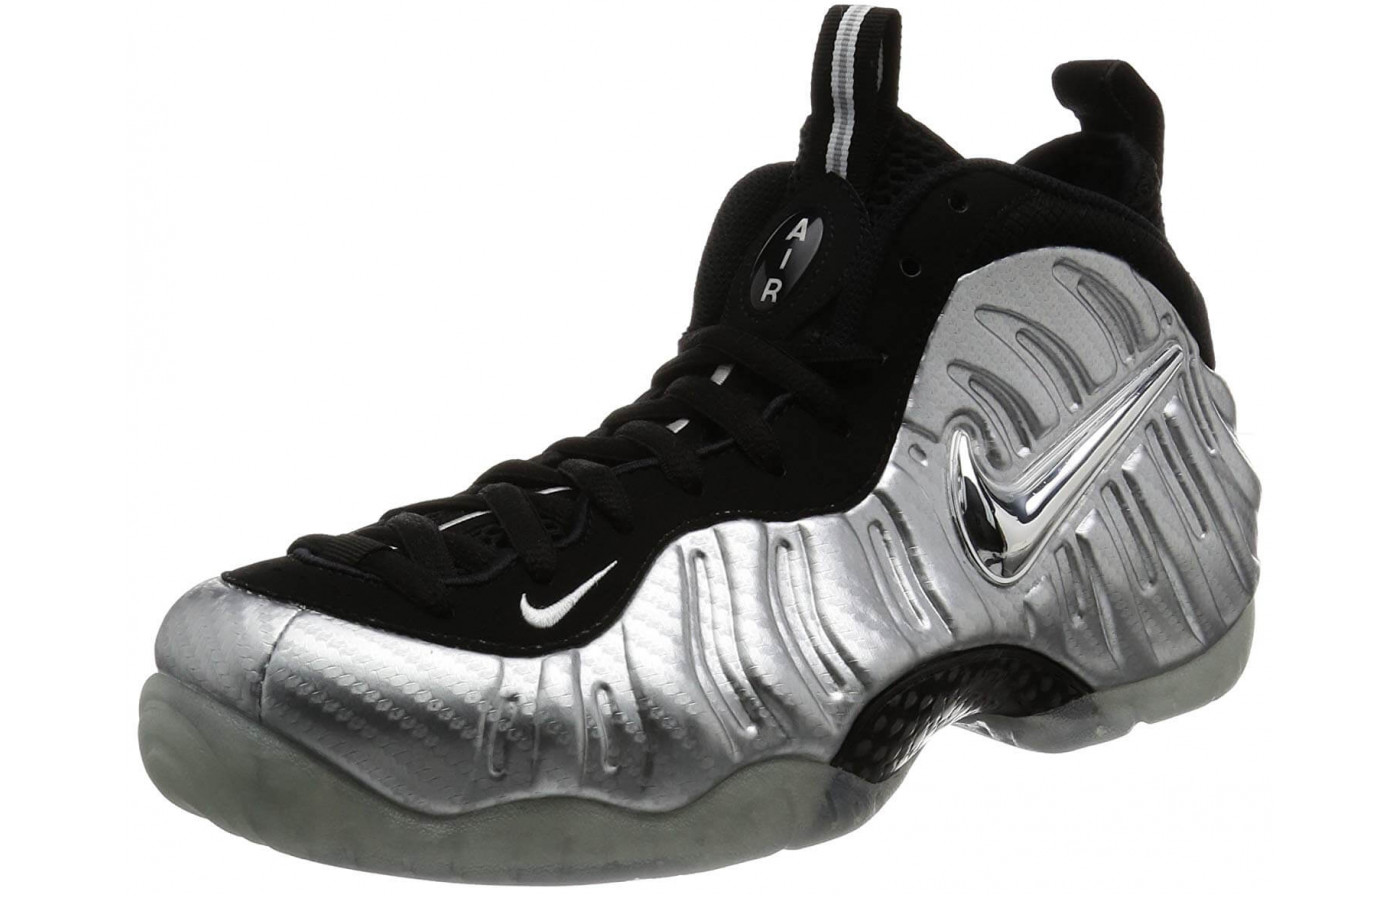 new style e0e61 14d40 Nike Air Foamposite Pro Fully Reviewed